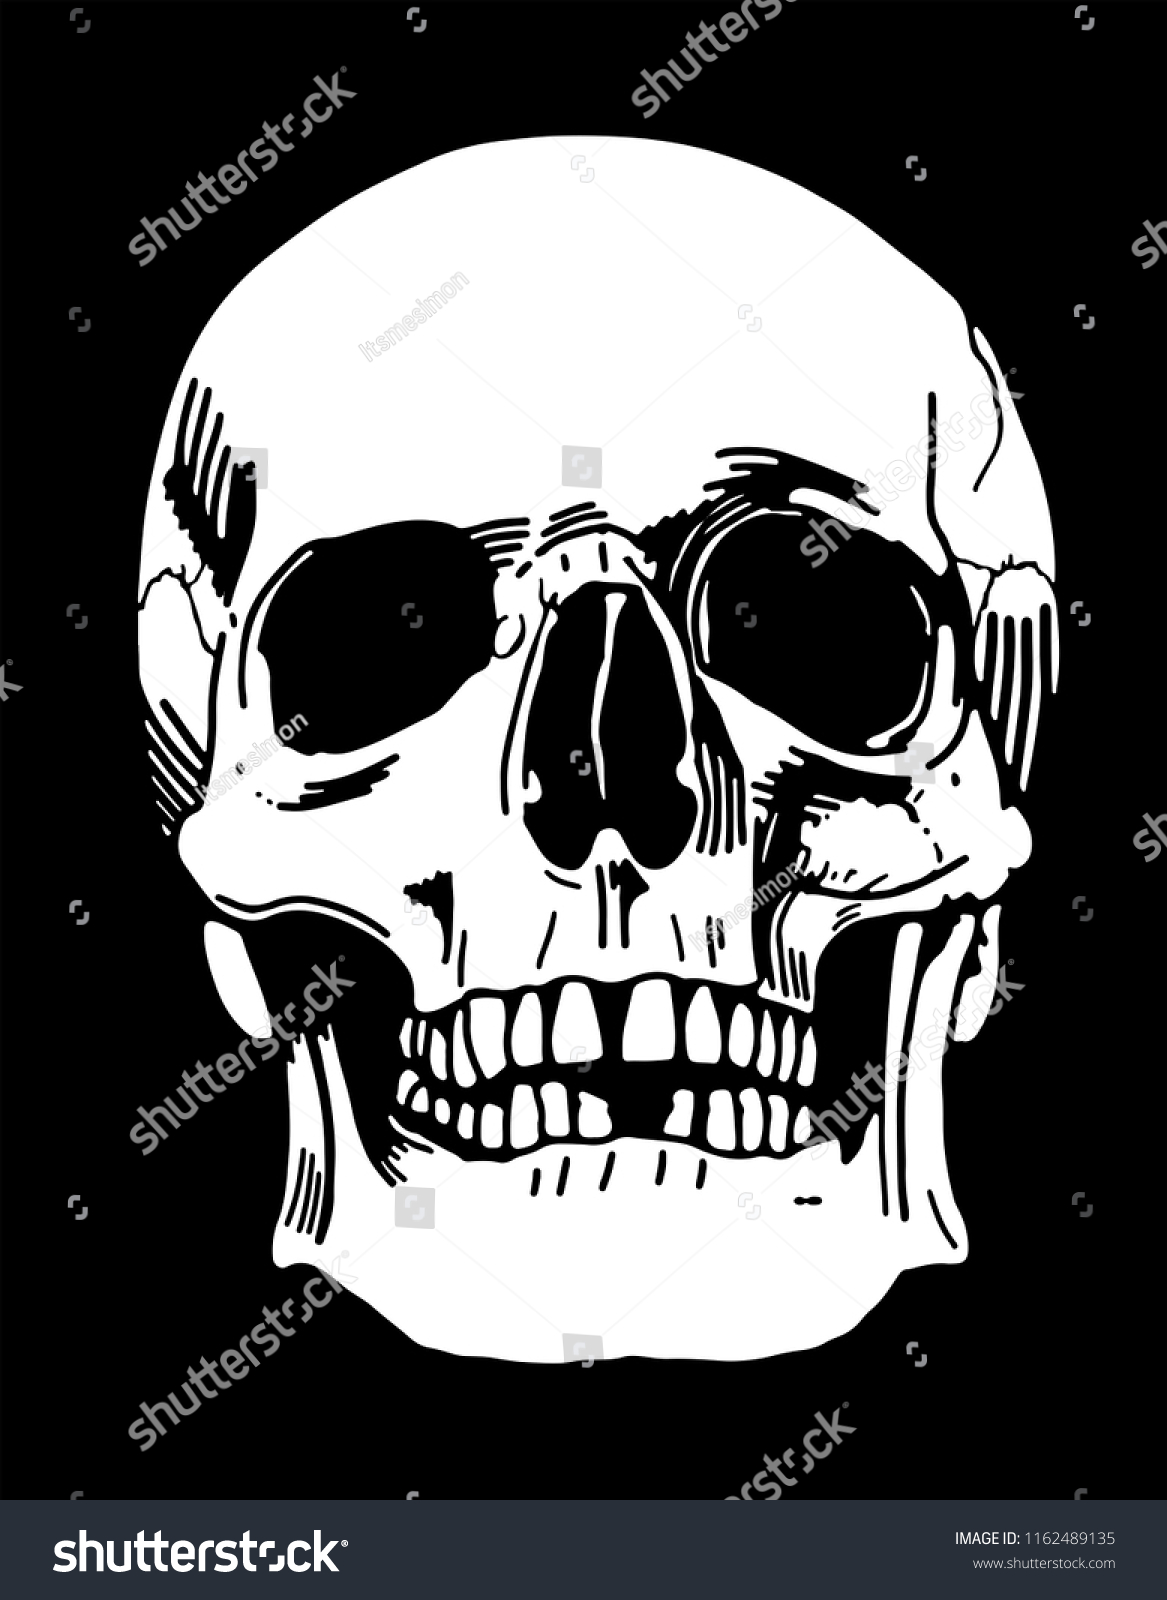 8a5134d6eeb75 Handdrawn Human Skull Illustration On Black Stock Vector (Royalty ...